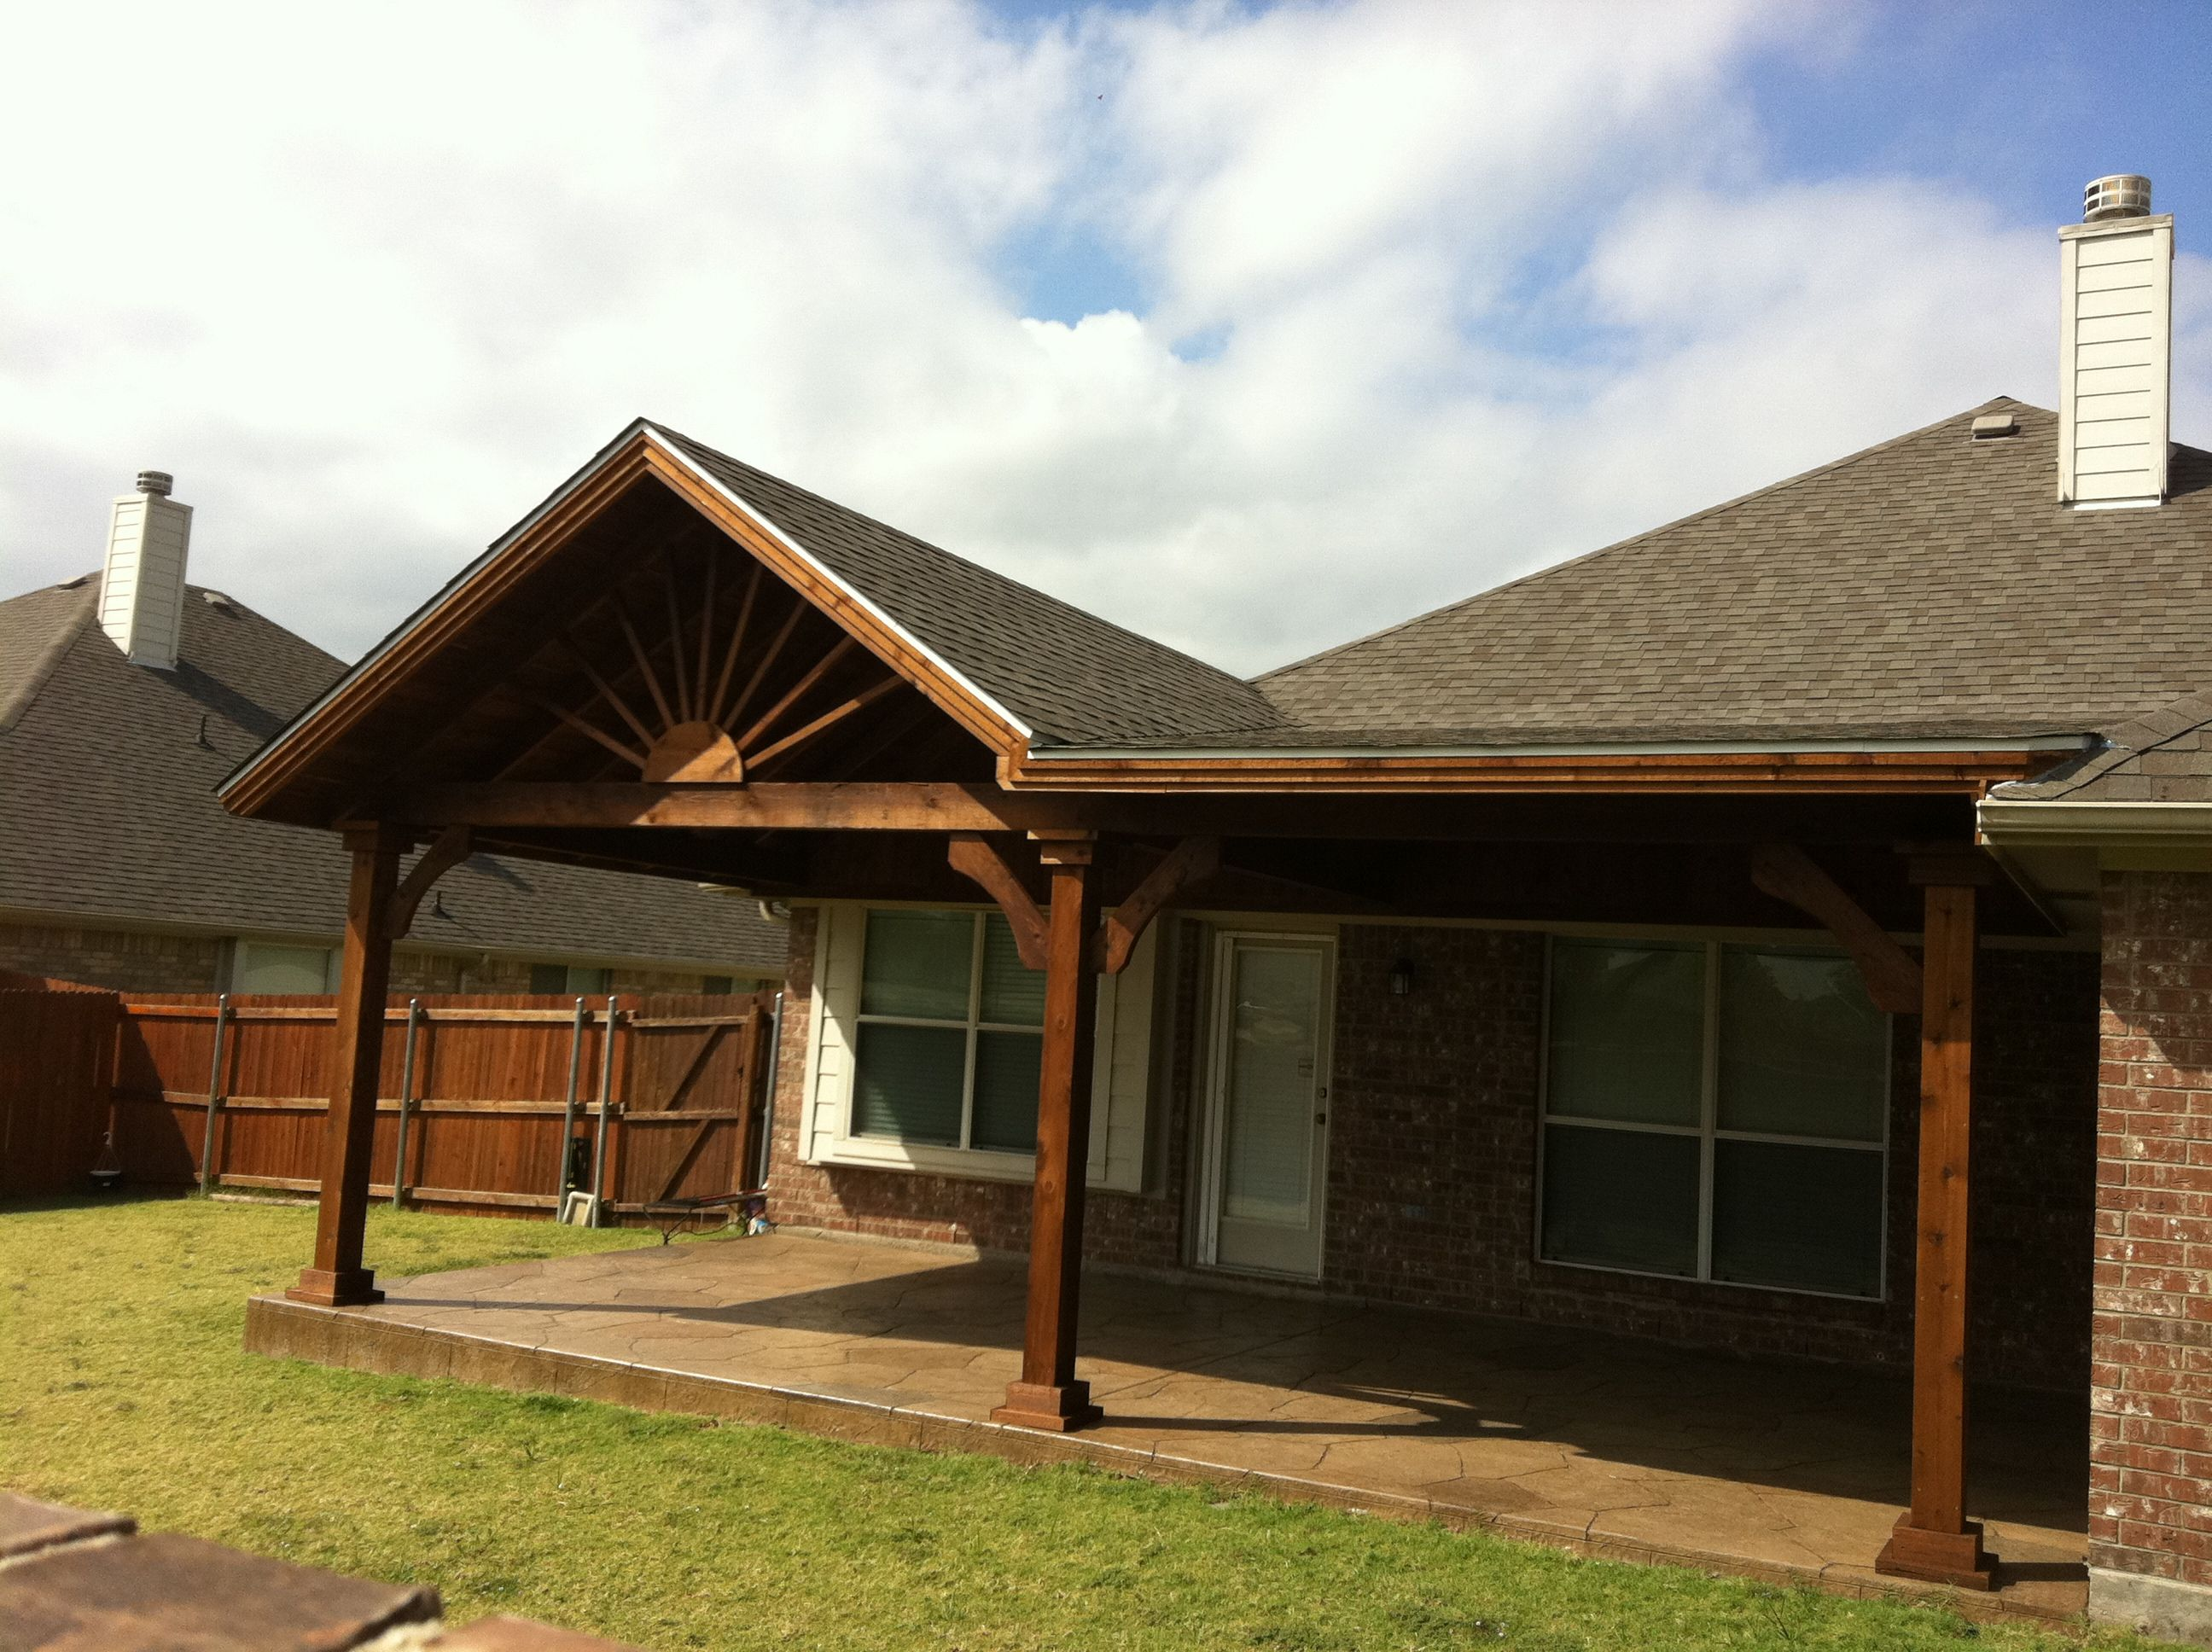 A Frame Patio Cover With Flat Cover Off Side Stamped Concrete Patio Under Backyard Fireplace Covered Patio Porch Patio